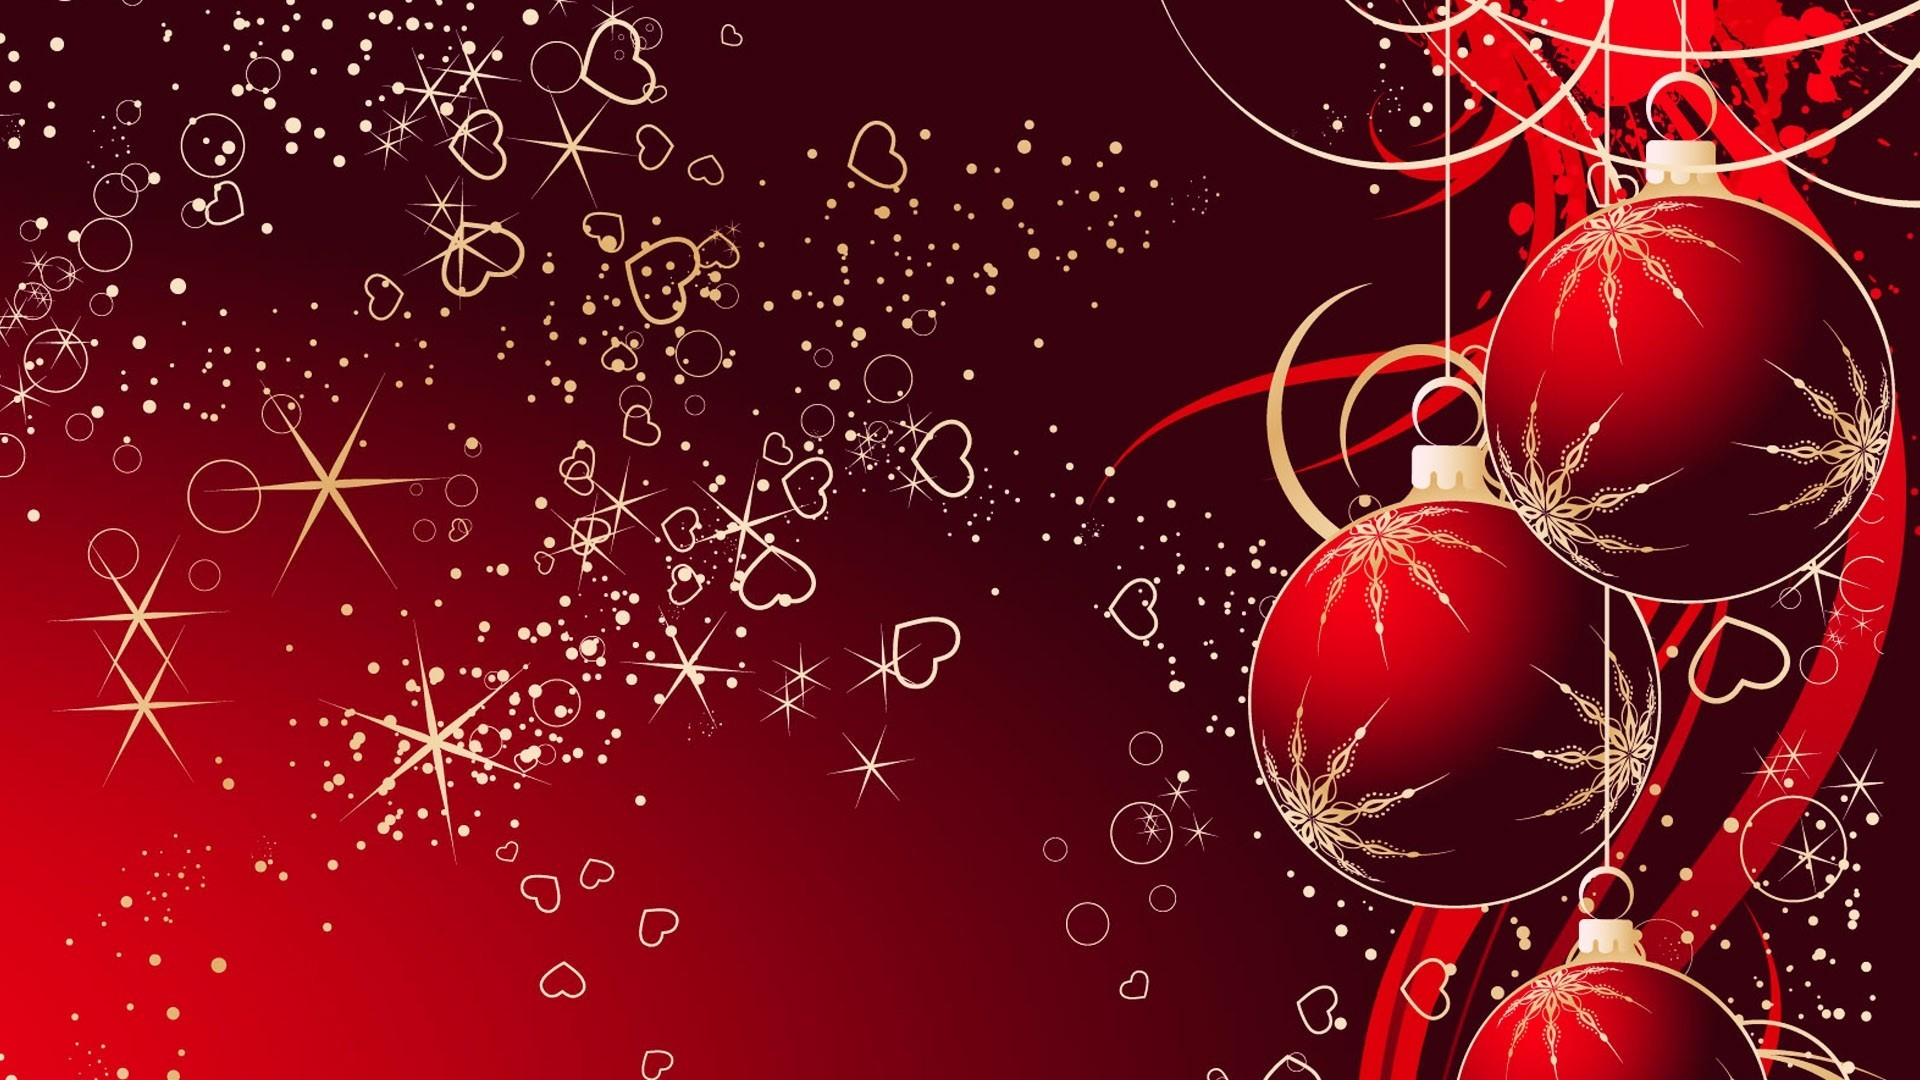 christmas wallpapers for desktop (55+ images)